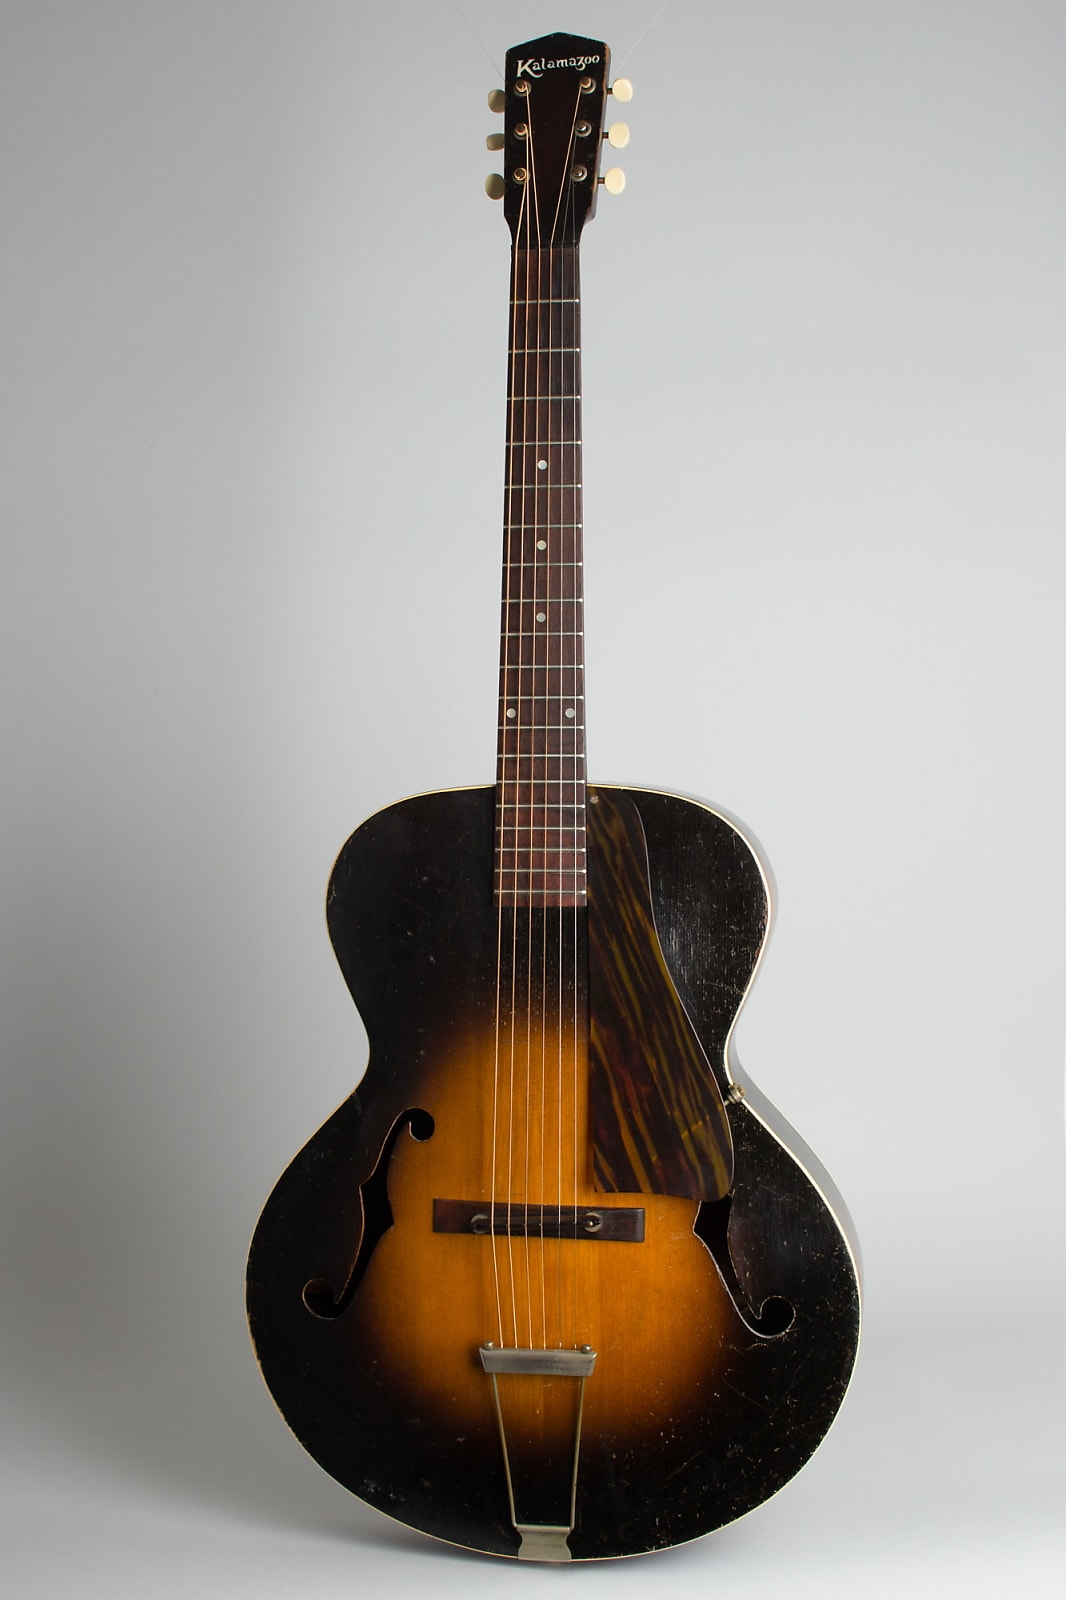 Kalamazoo  KG-31 Arch Top Acoustic Guitar,  c. 1936, NO CASE case.